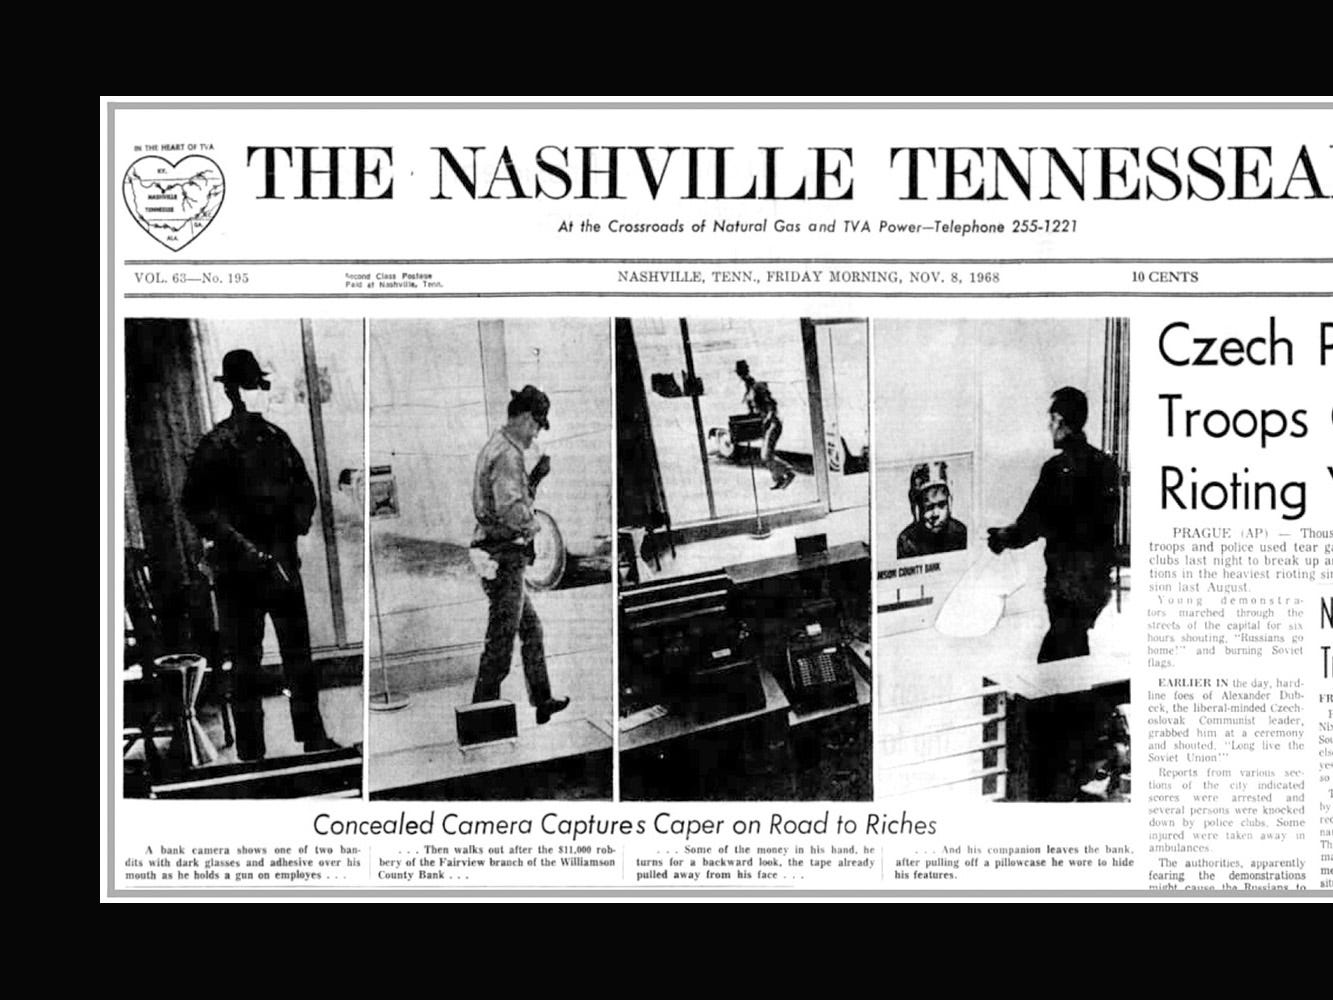 The front page of the The Nashville Tennessean on November 8, 1968 ran photos of suspects who robbed a Fairview bank the prior afternoon.